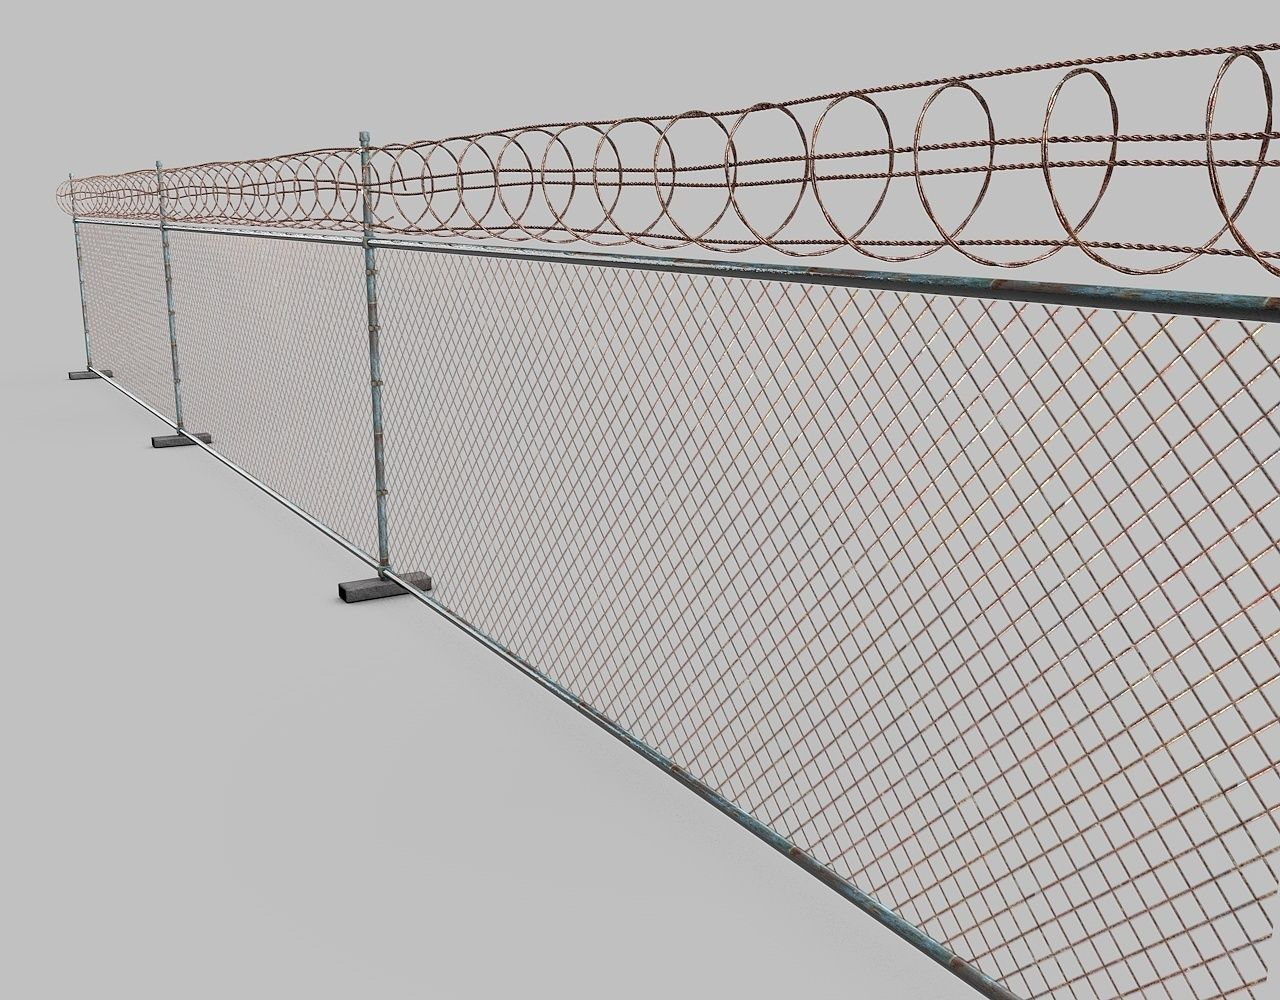 Barbed wire fence 3d model obj 3ds fbx c4d dxf for 3d fence